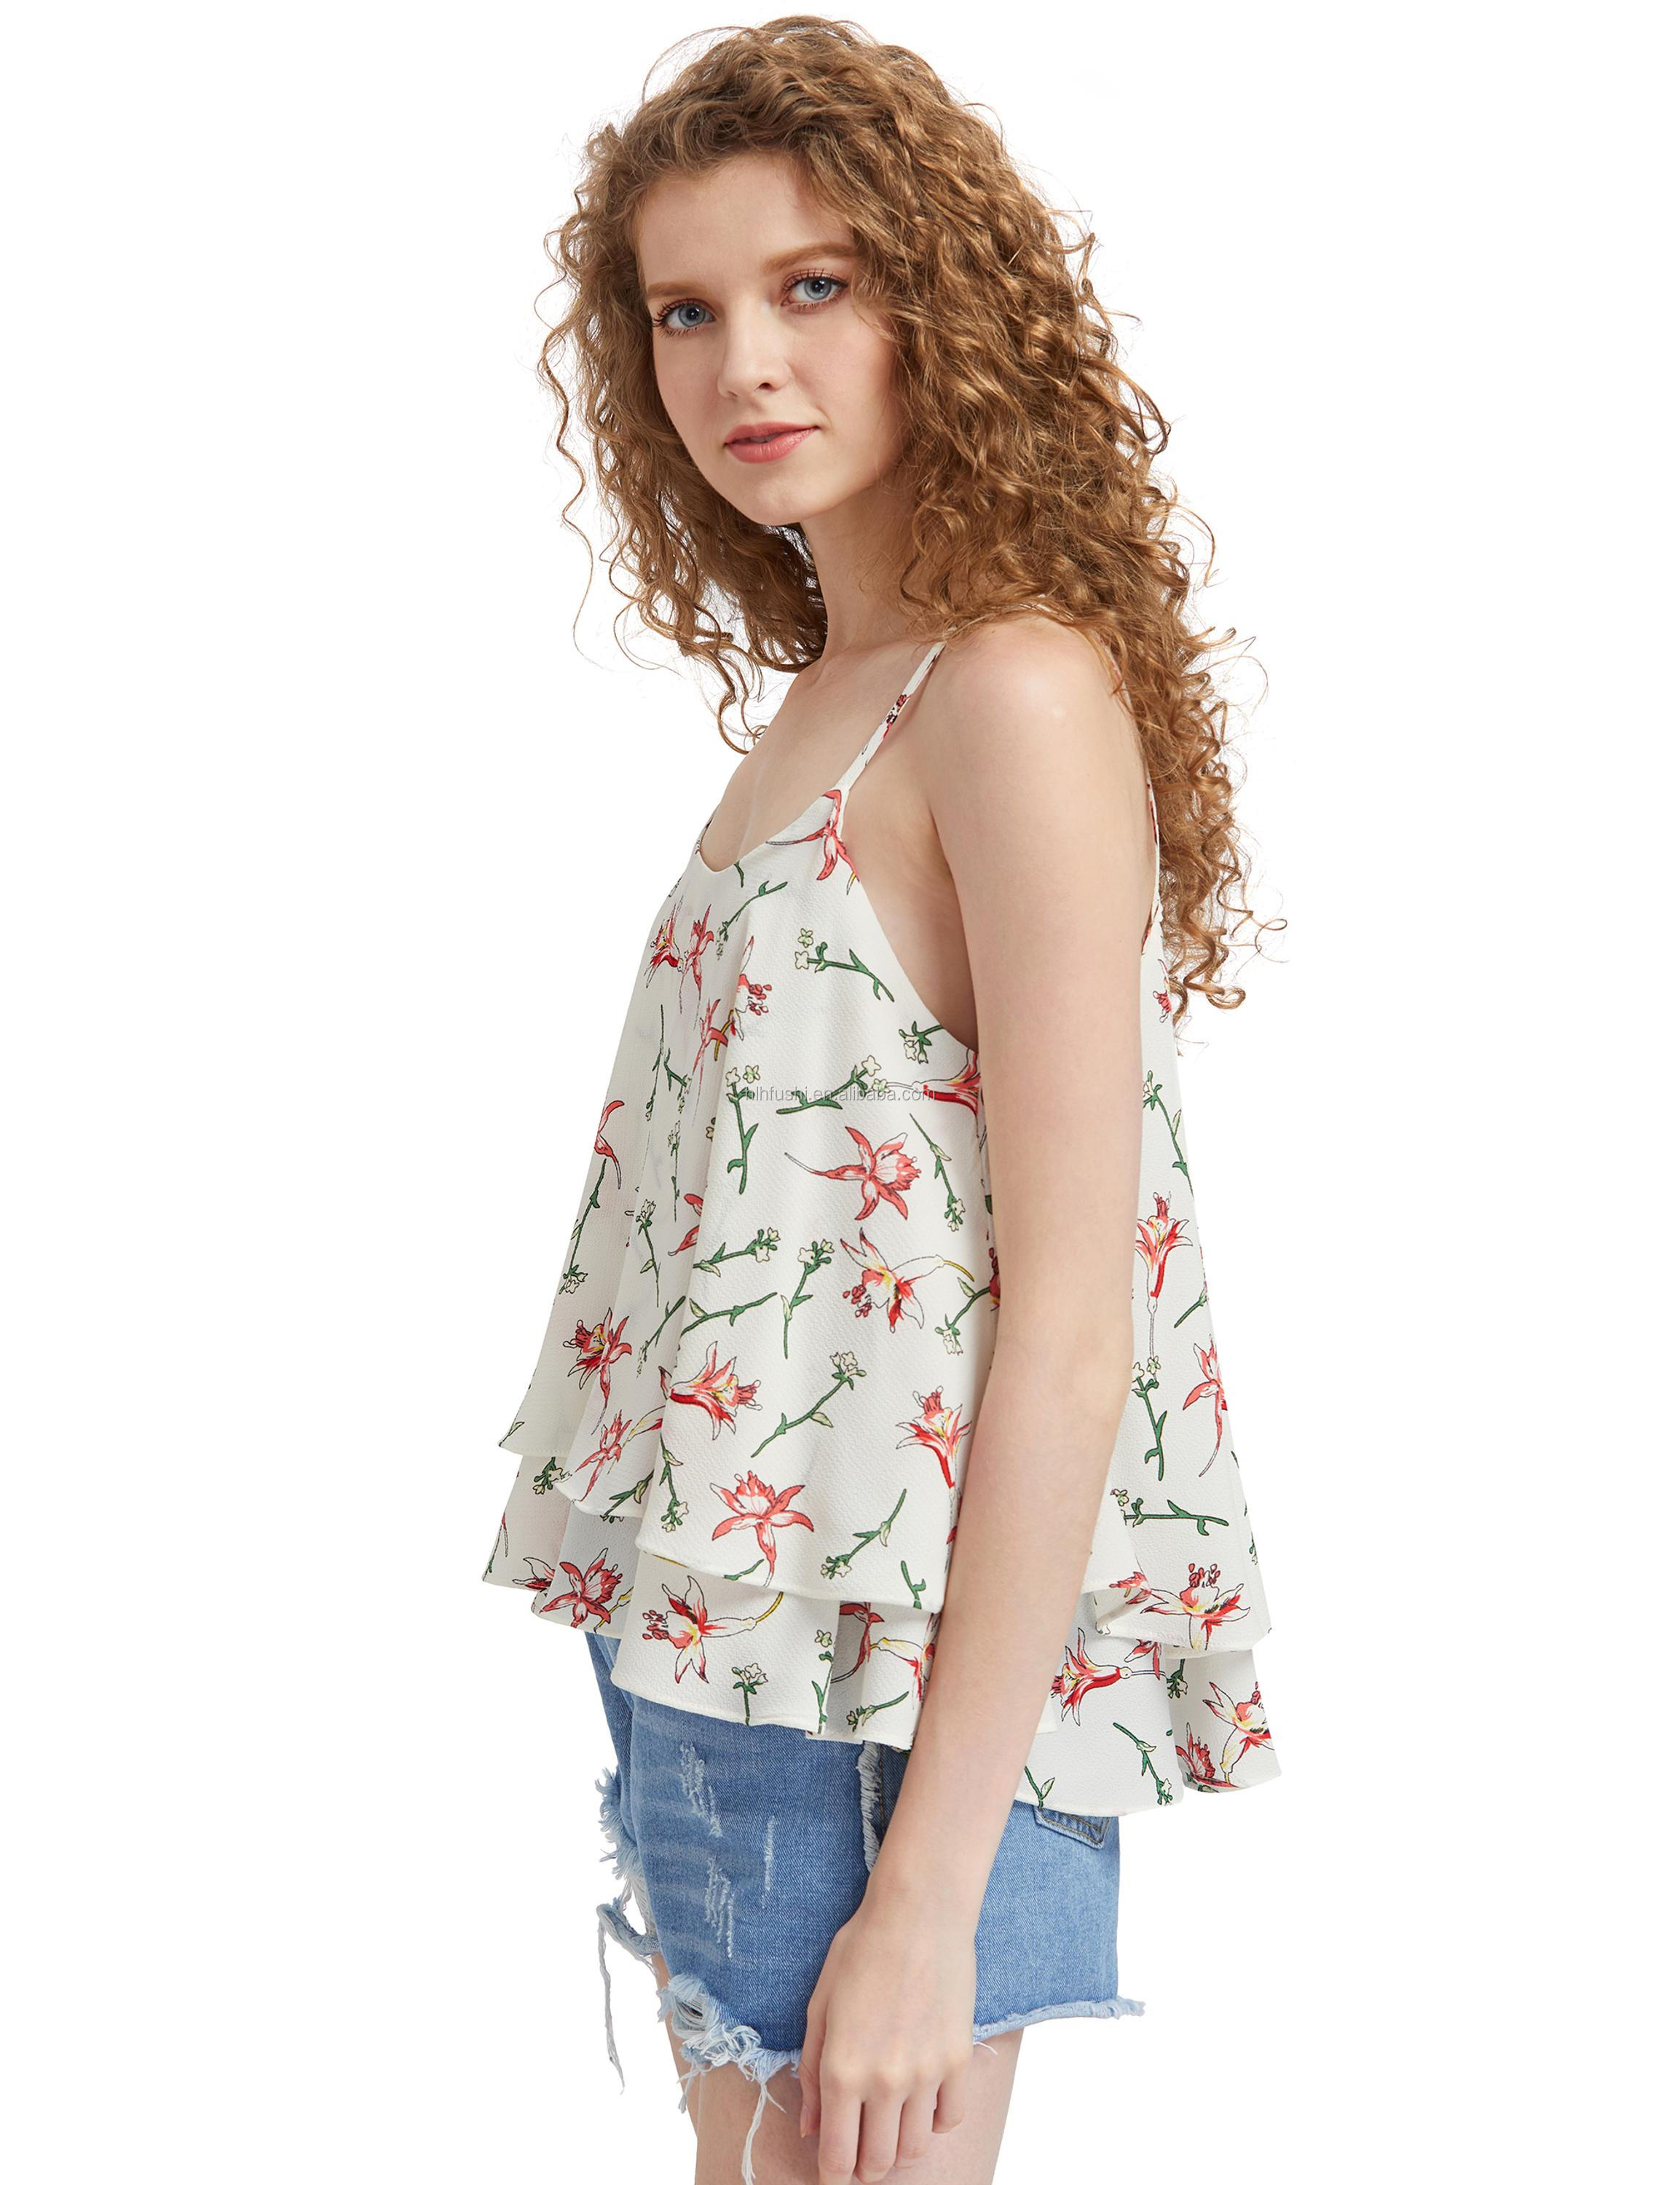 19d4973ecce657 Floral Strap Cross Sexy Sleeveless Blouse Strapless Double Layer Chiffon  Fresh Backing Vest